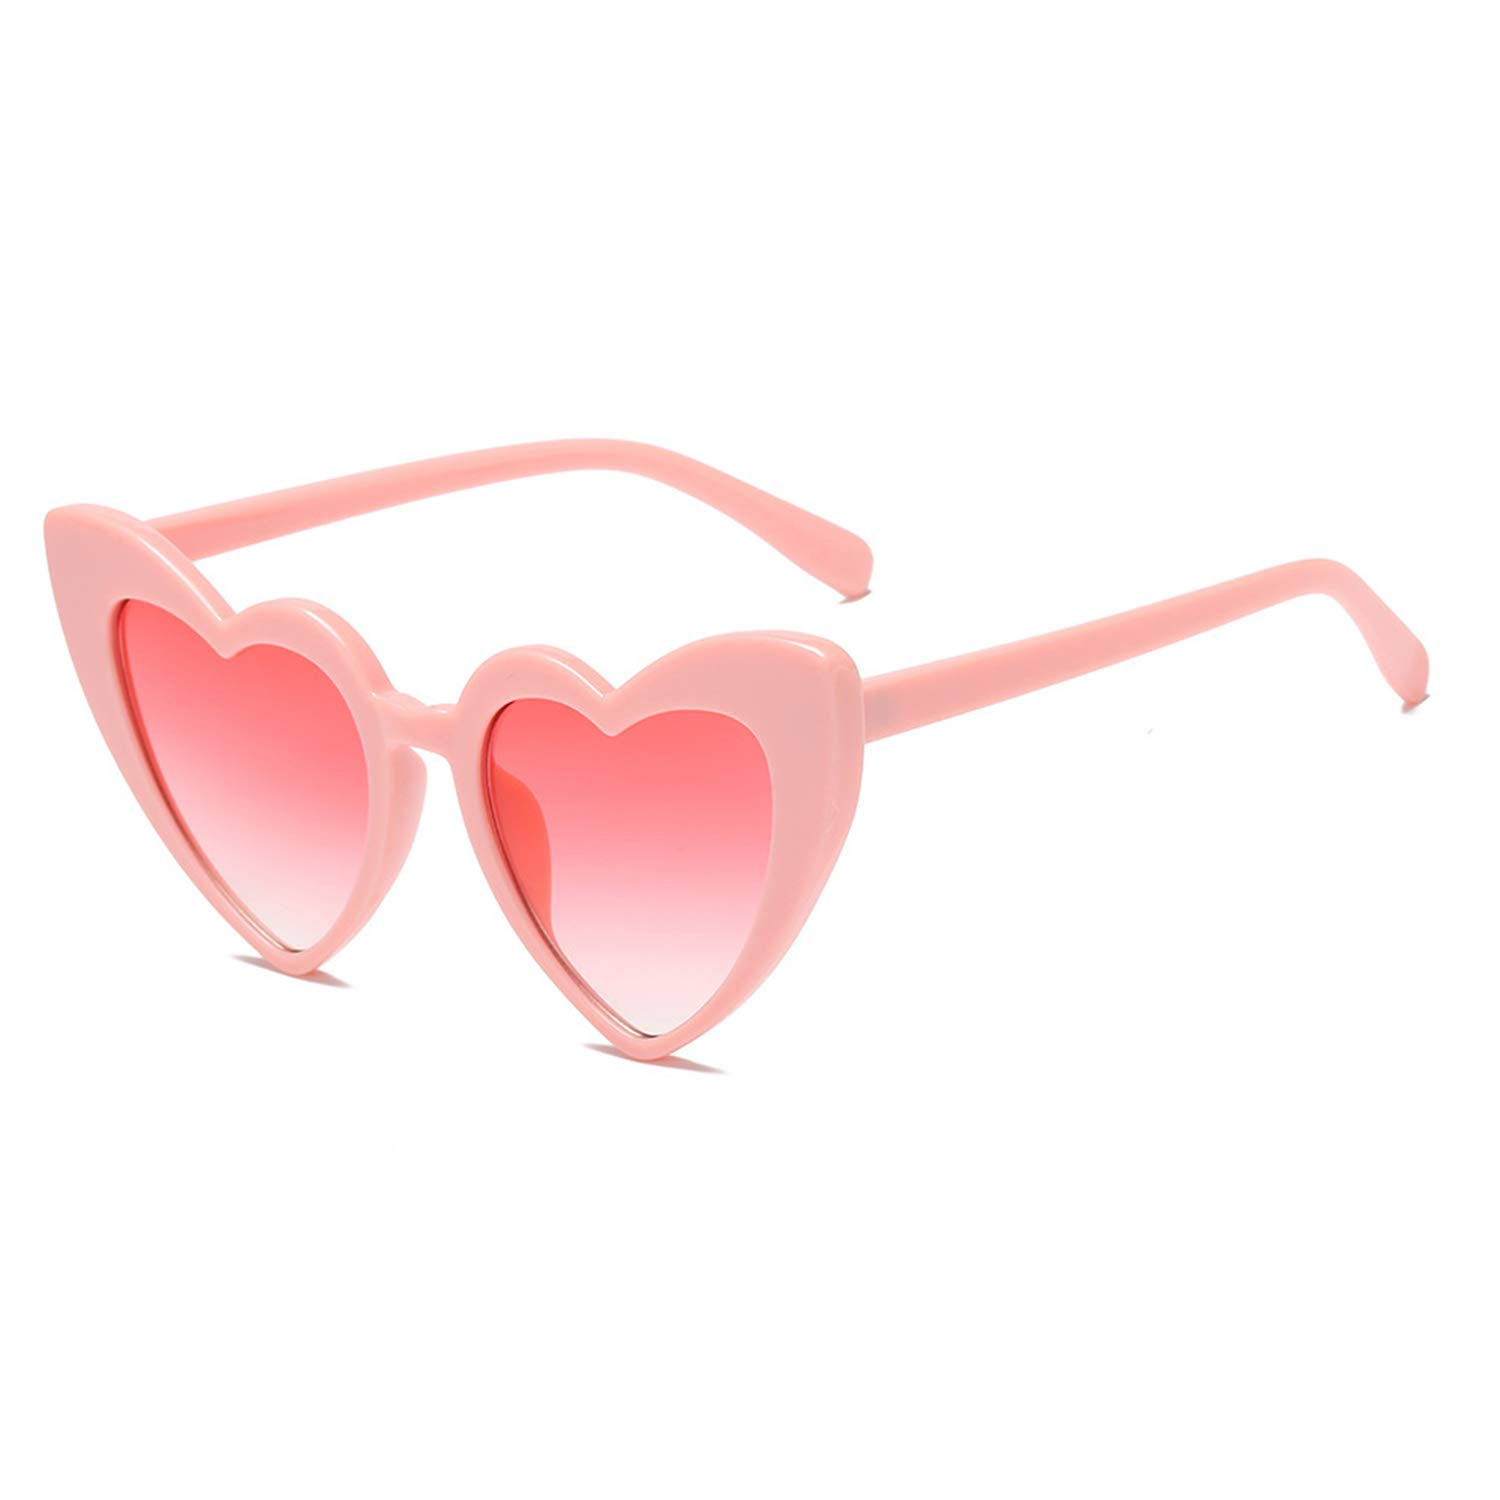 KADIGUCI  — Heart Shaped Sunglasses —  $9.99